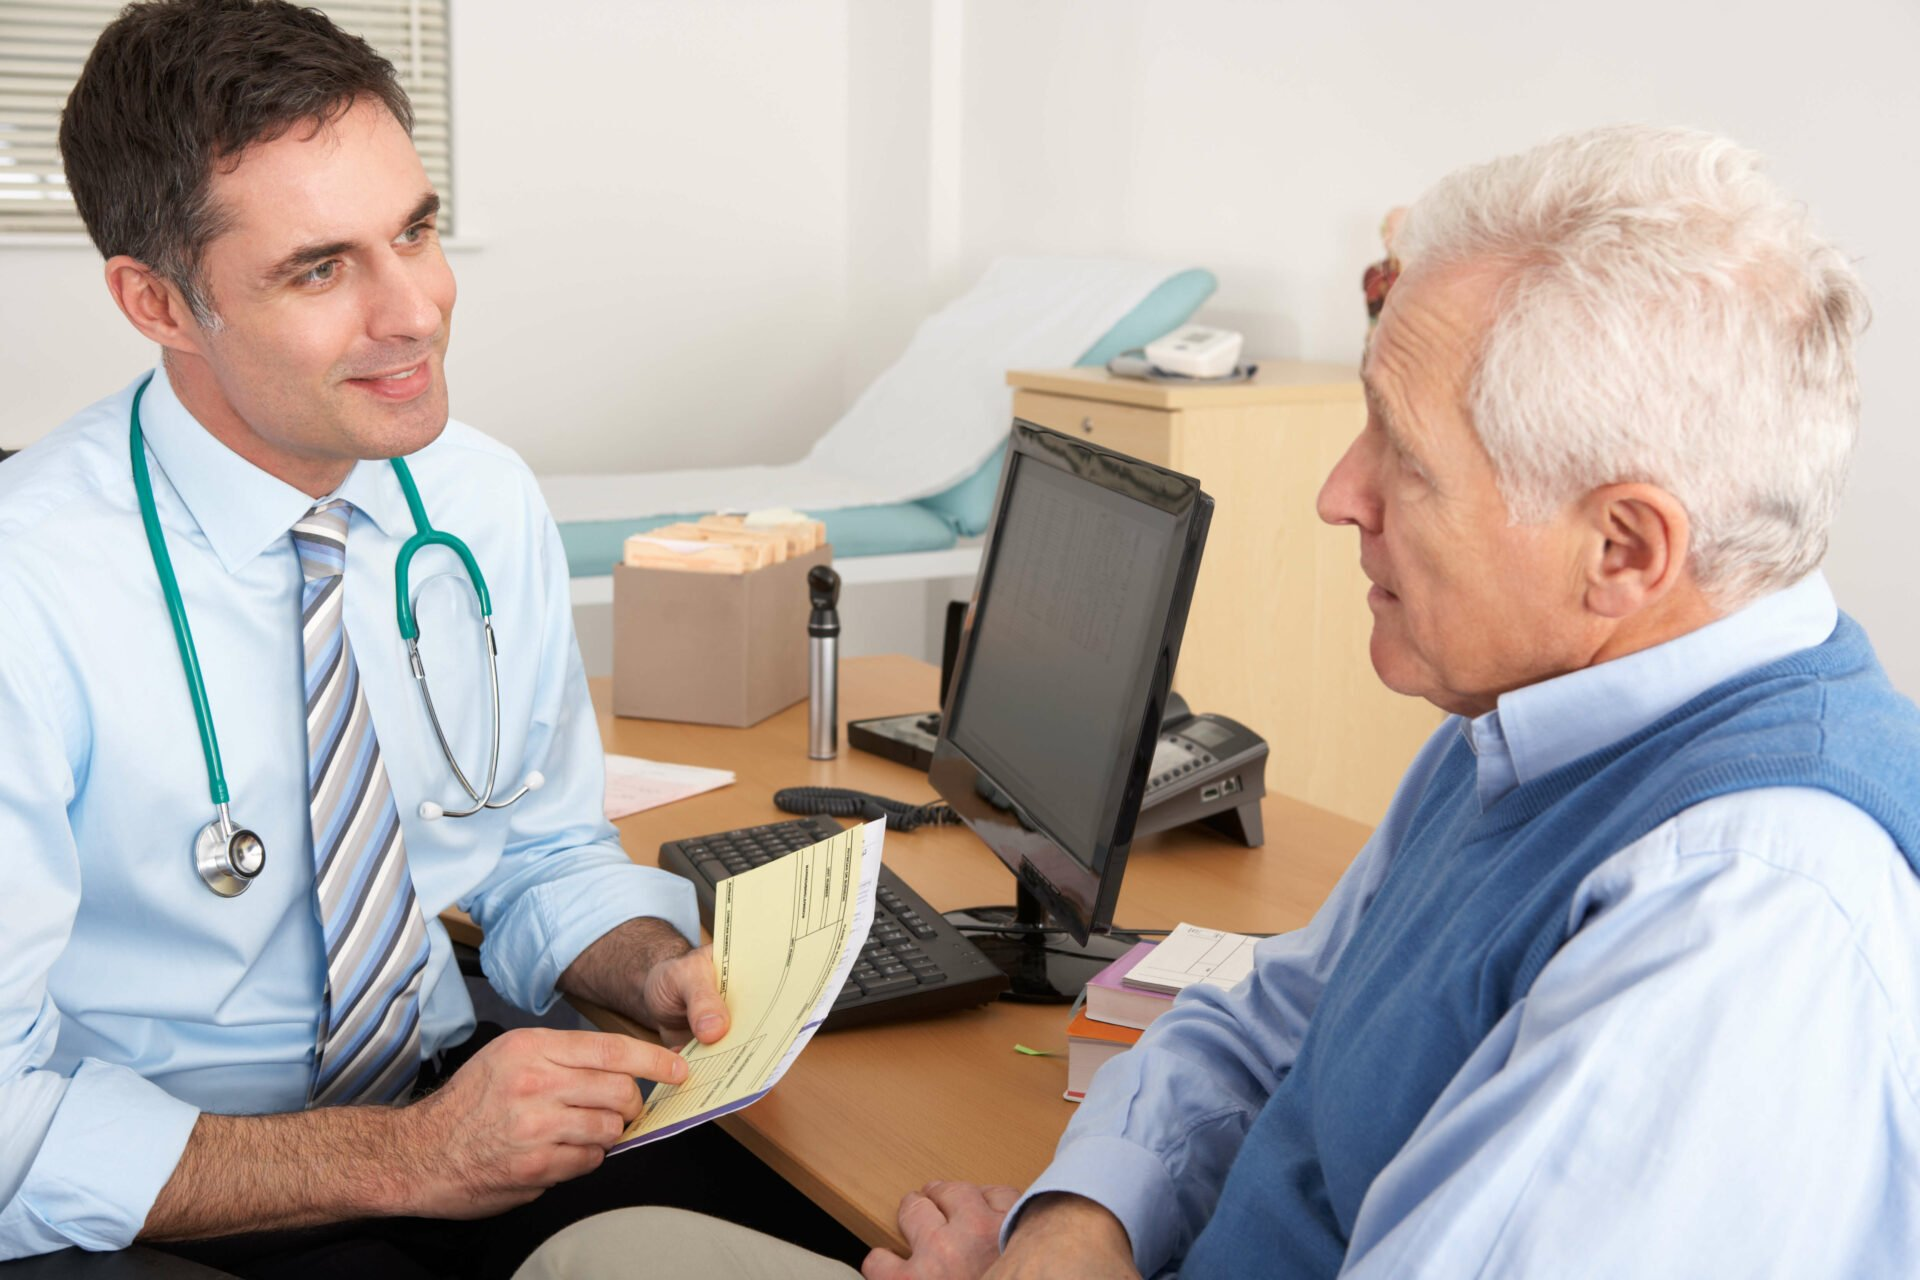 Insurance for doctors and GP surgeries